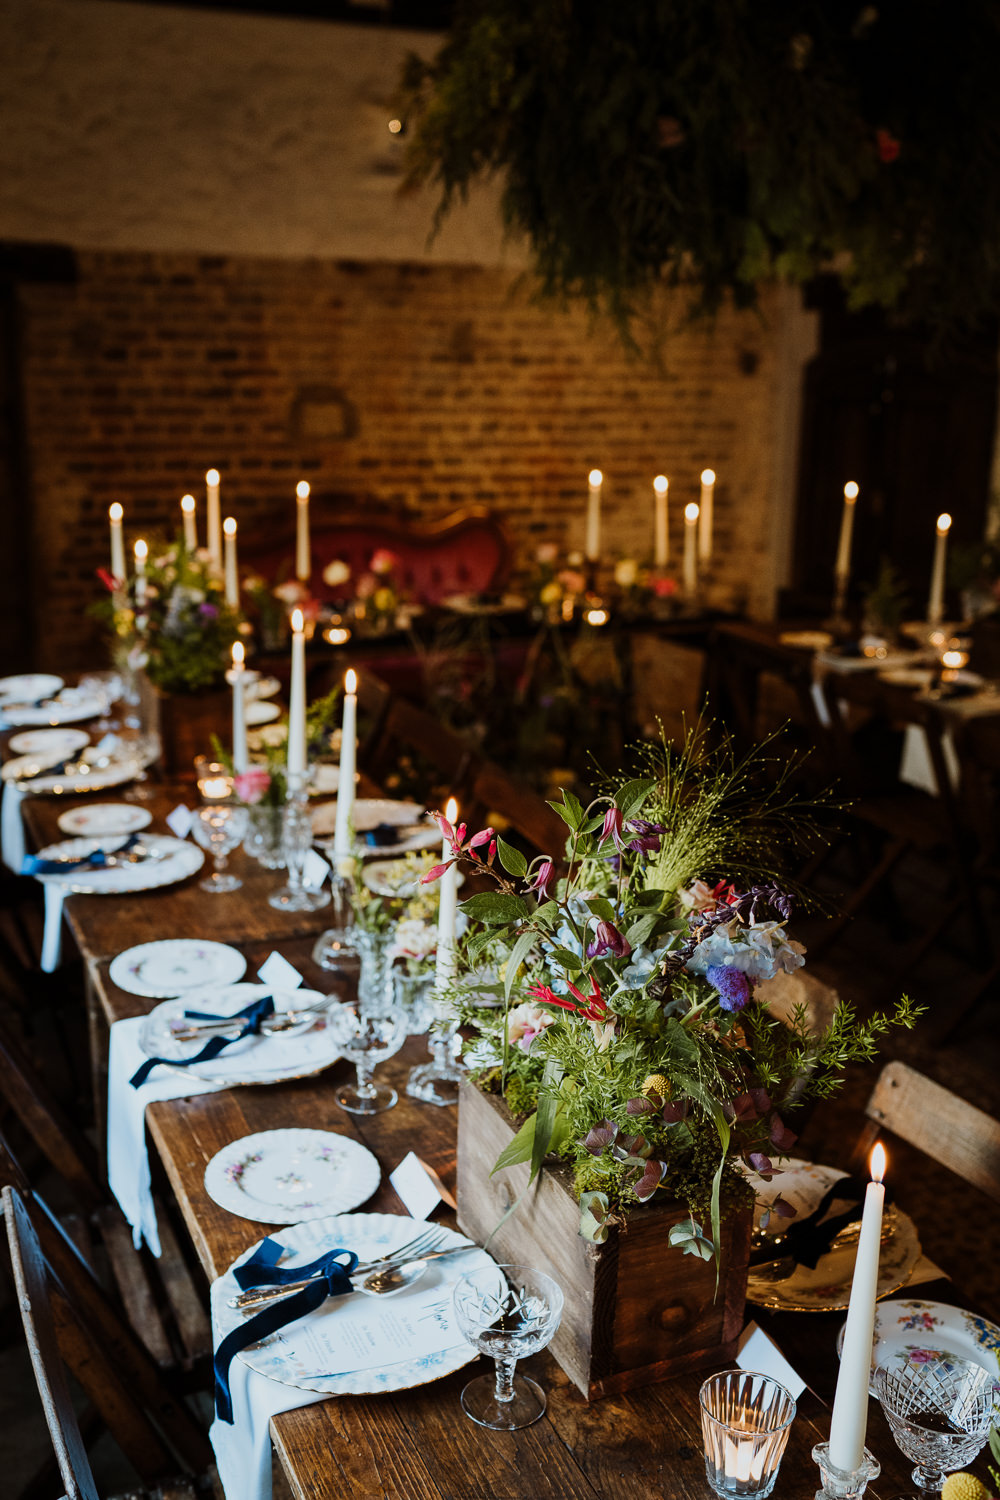 Table Flowers Centrepiece Wooden Box Crate Candles Decor Great Comp Garden Wedding Nicola Dawson Photography